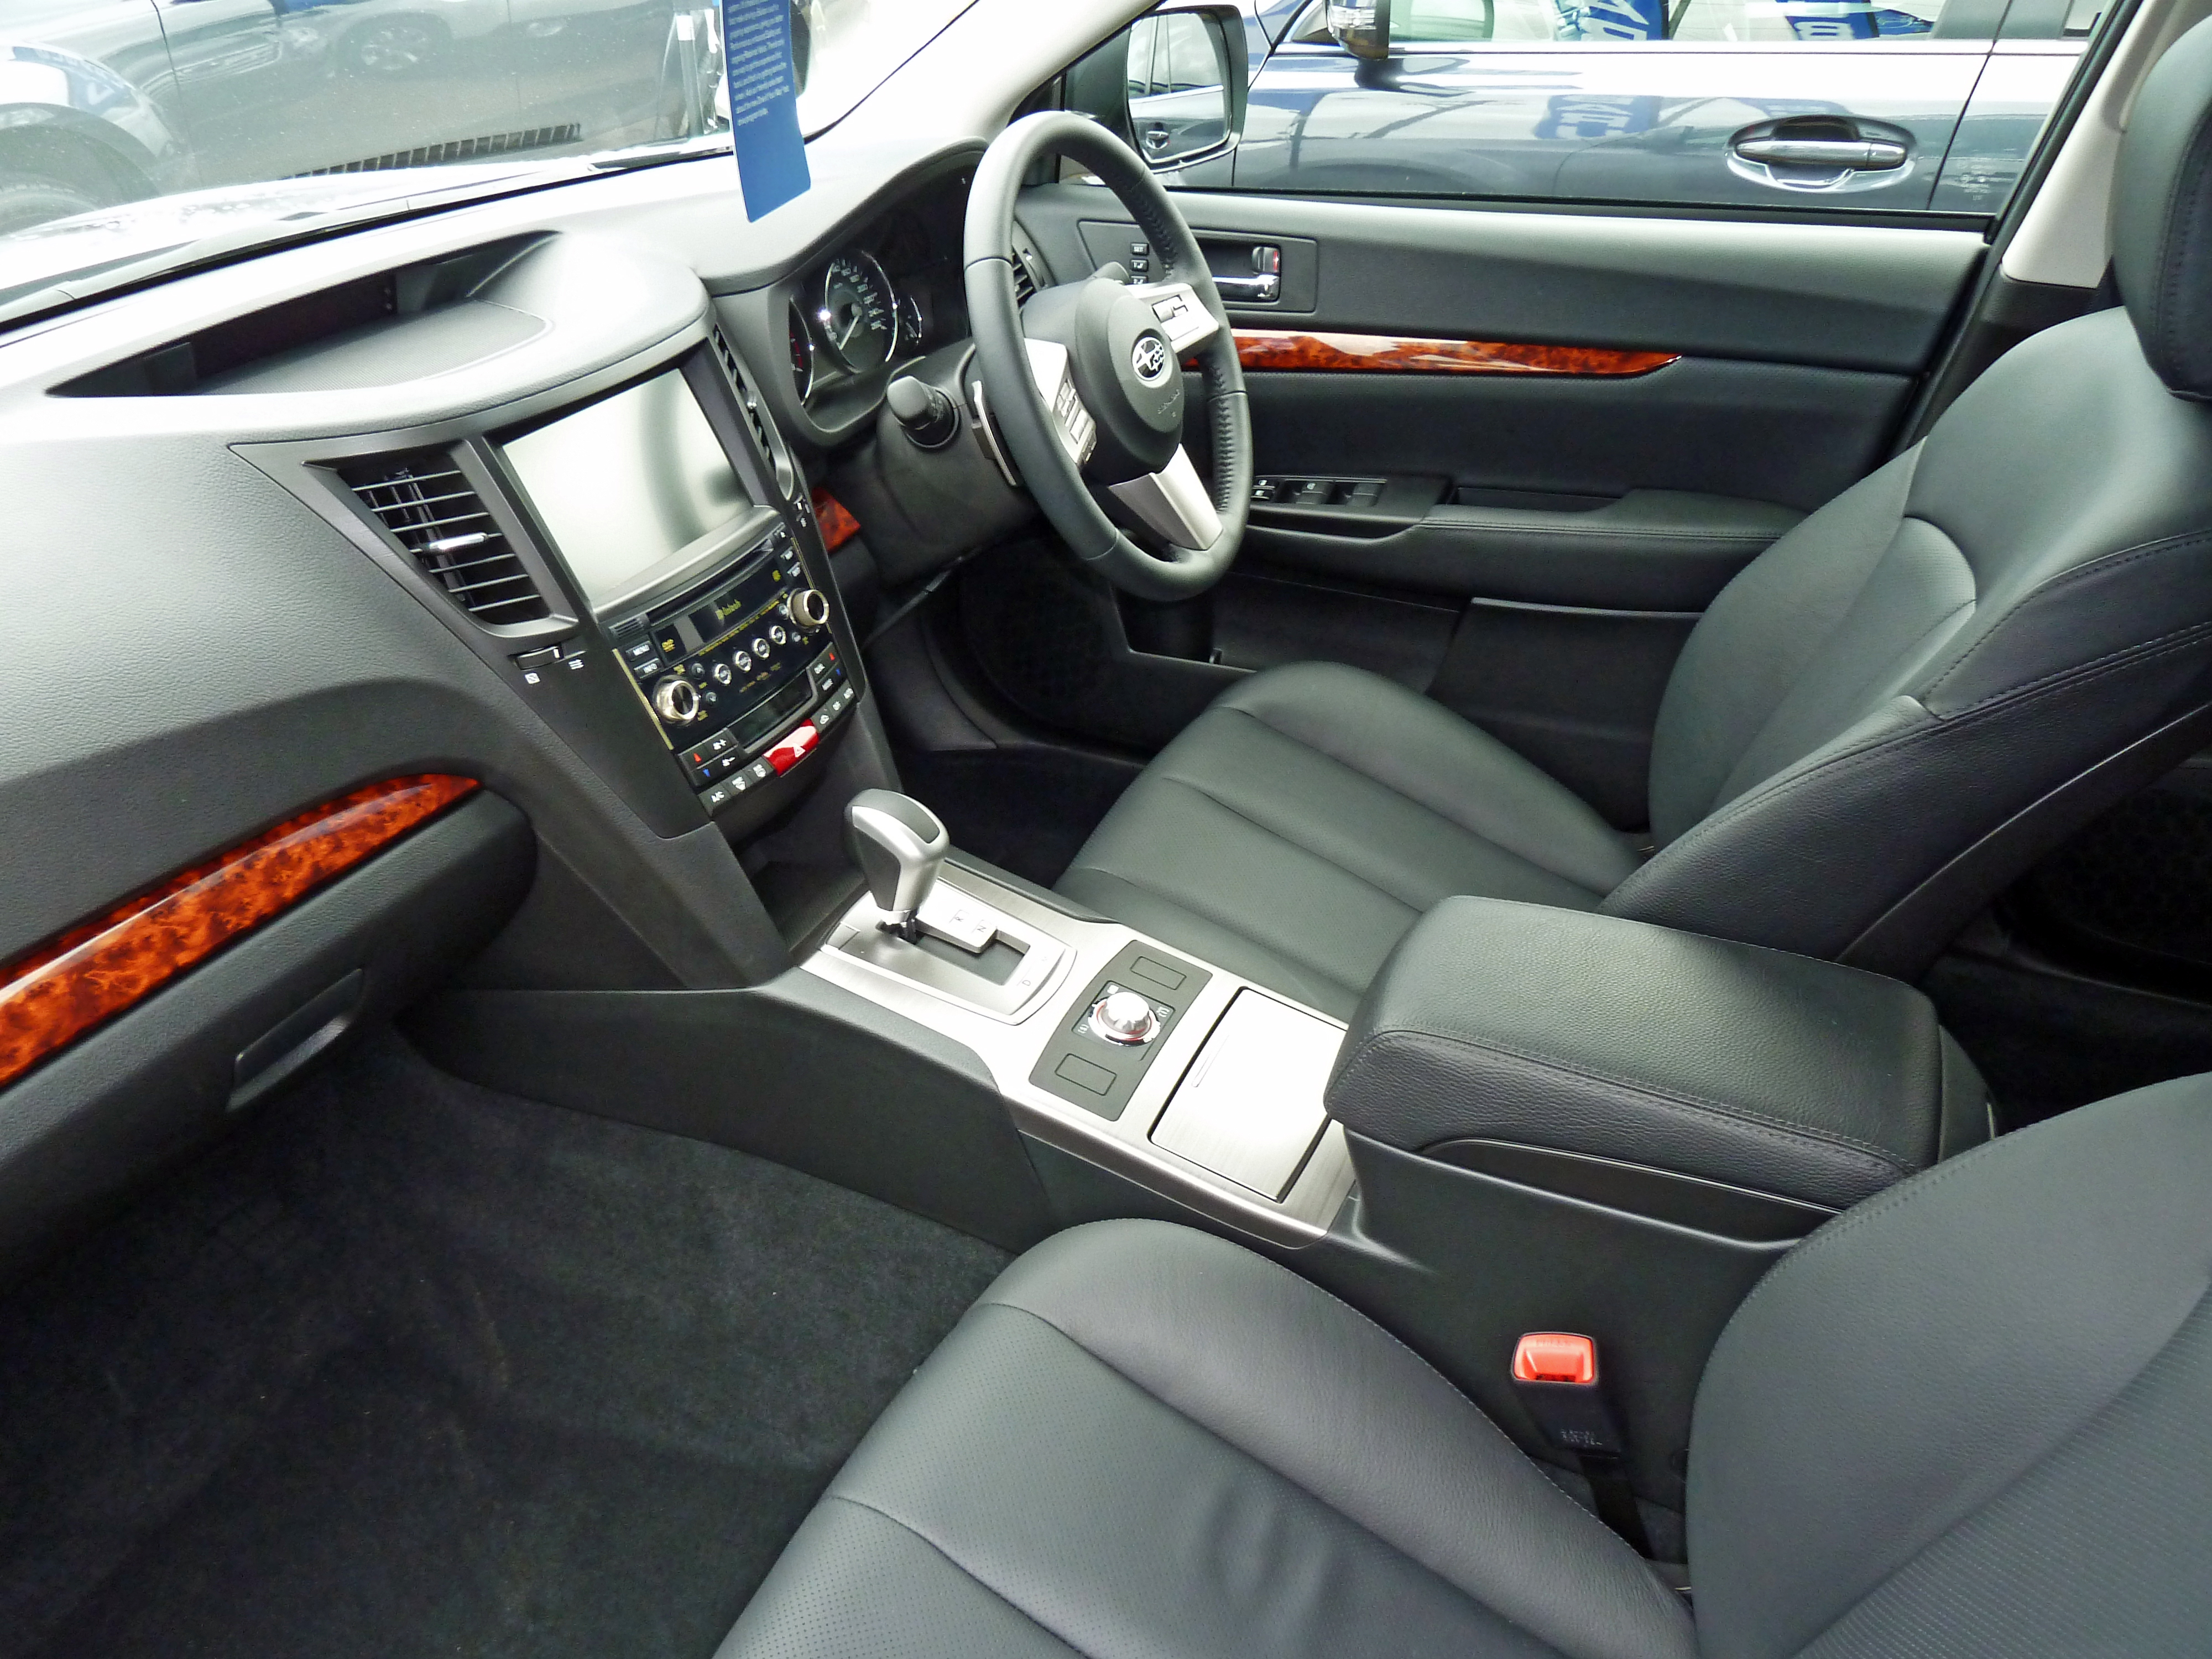 Image Gallery 2010 Outback Interior